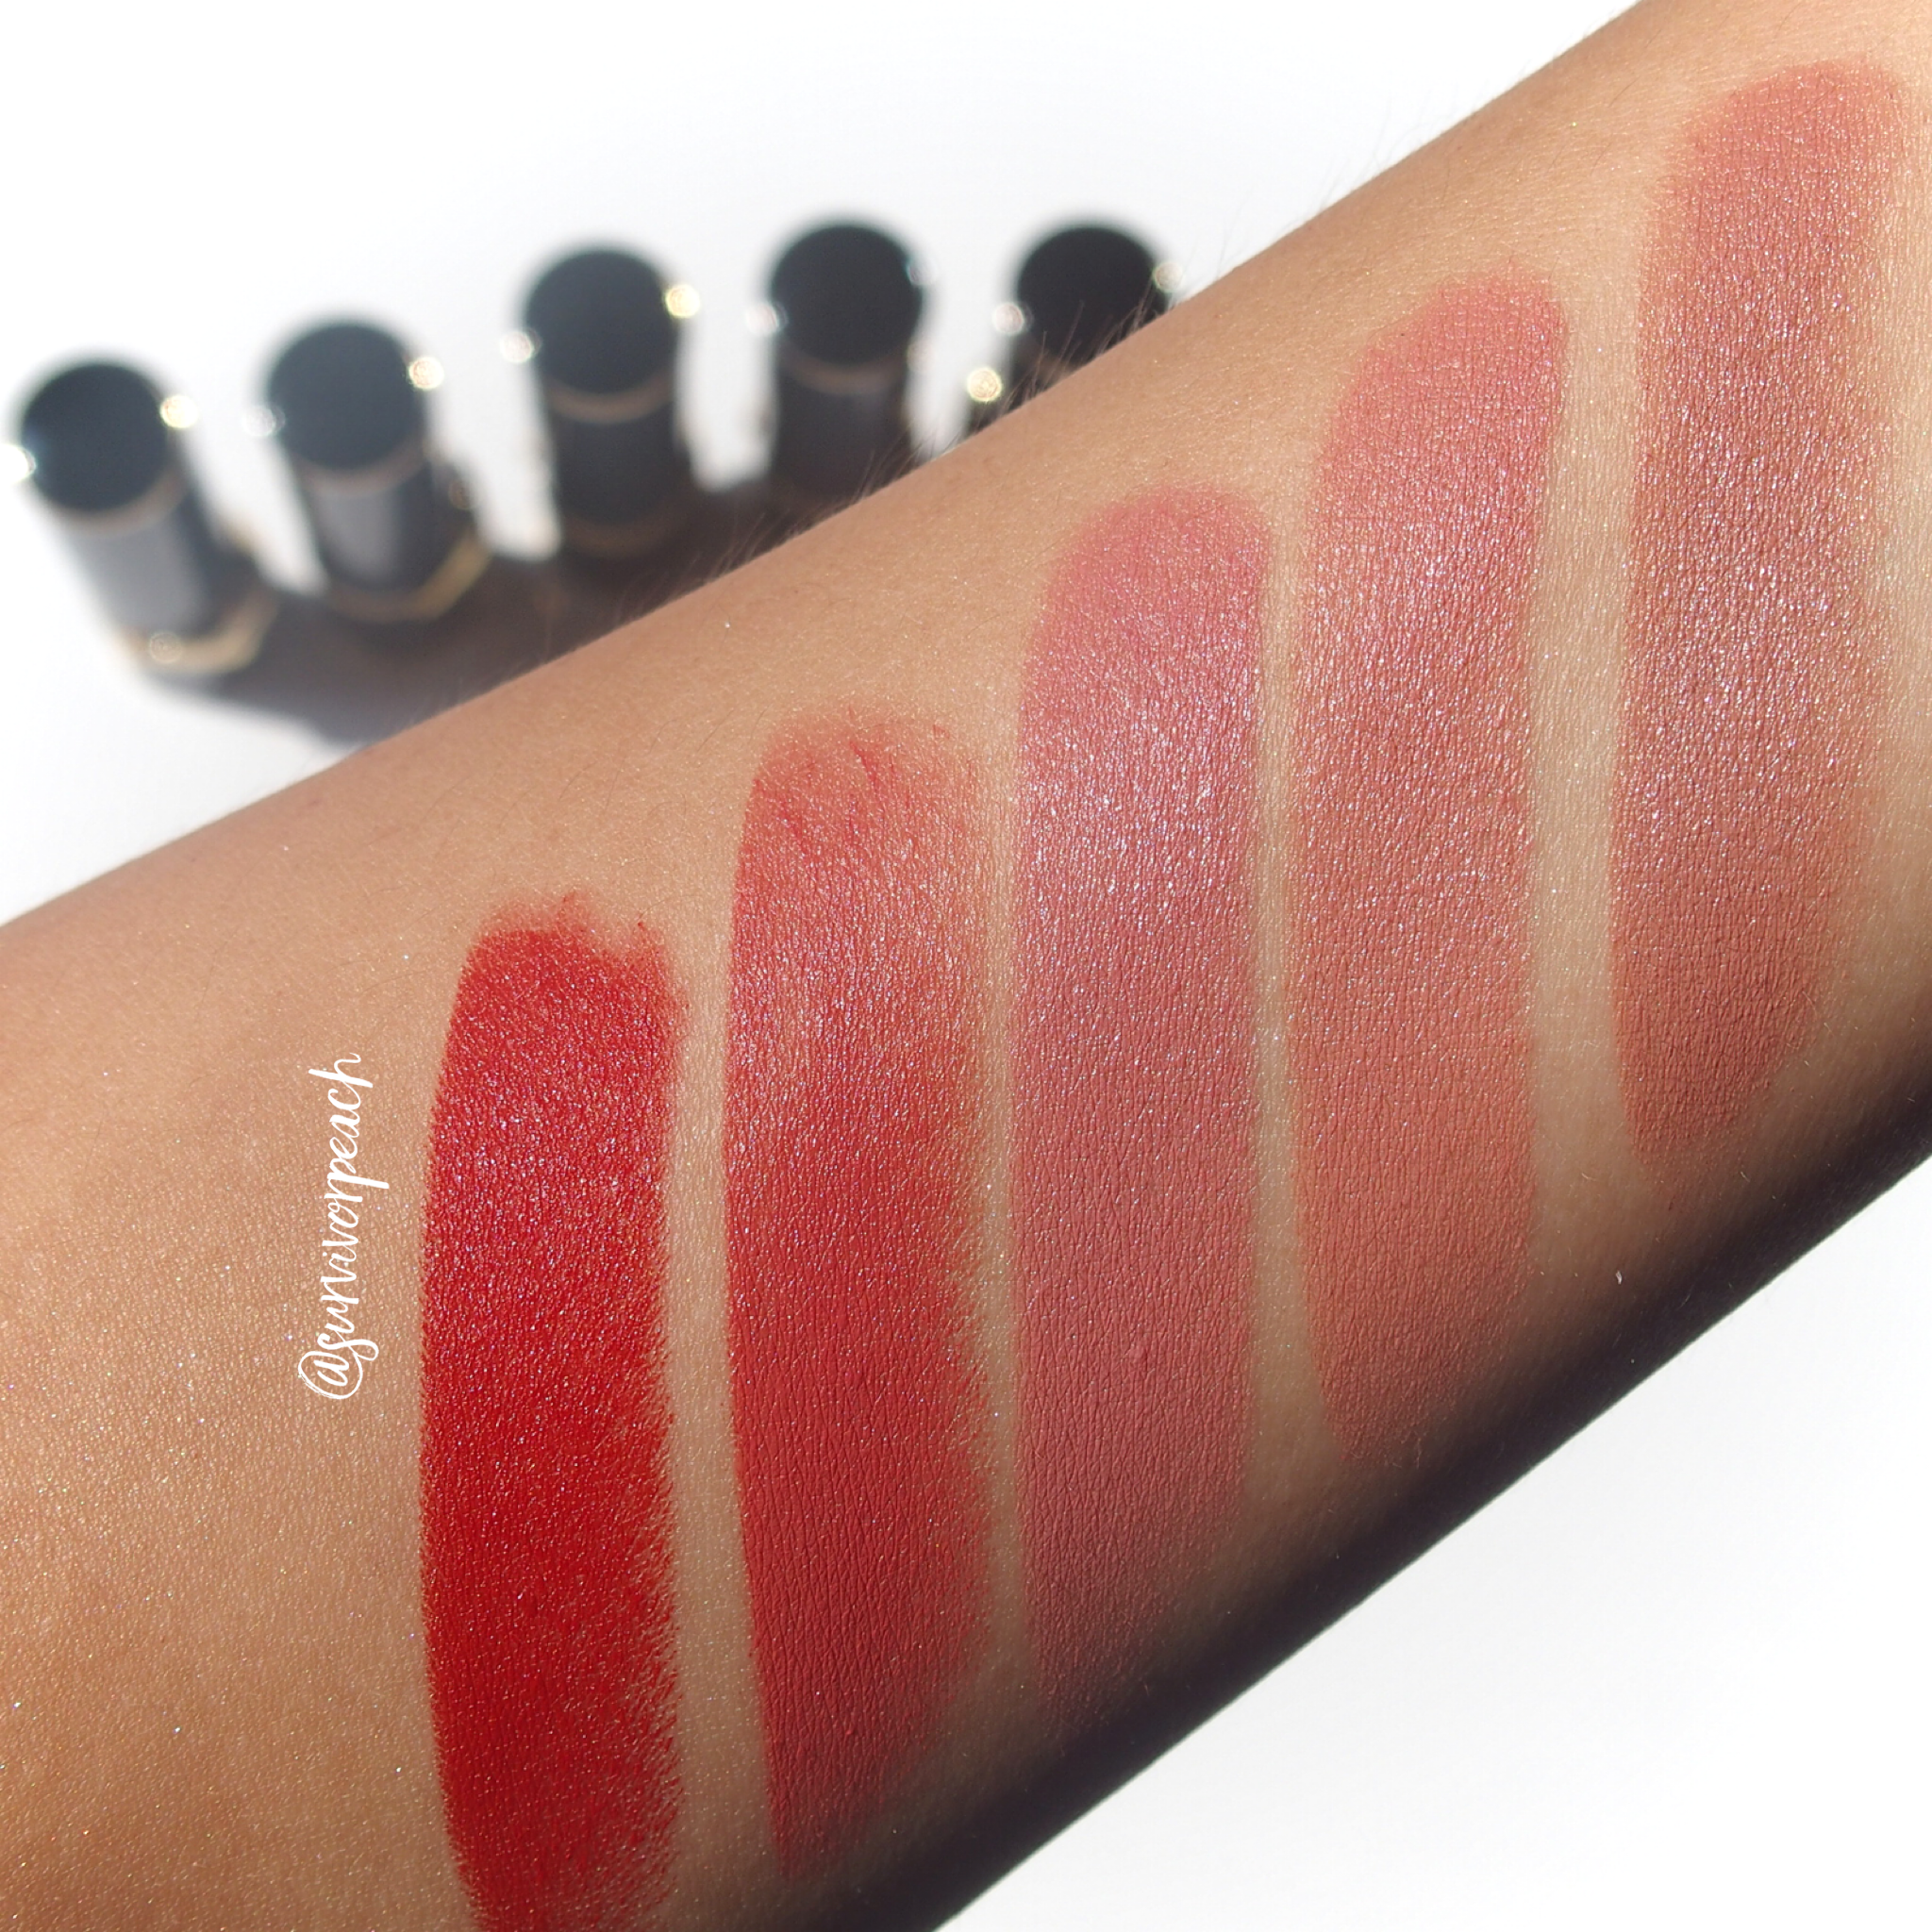 Swatches of the Pat McGrath Labs Luxe Trance Lipsticks in shades Donatella, Valetta, Sextrology, Tropicalia, and Mcgrath Muse